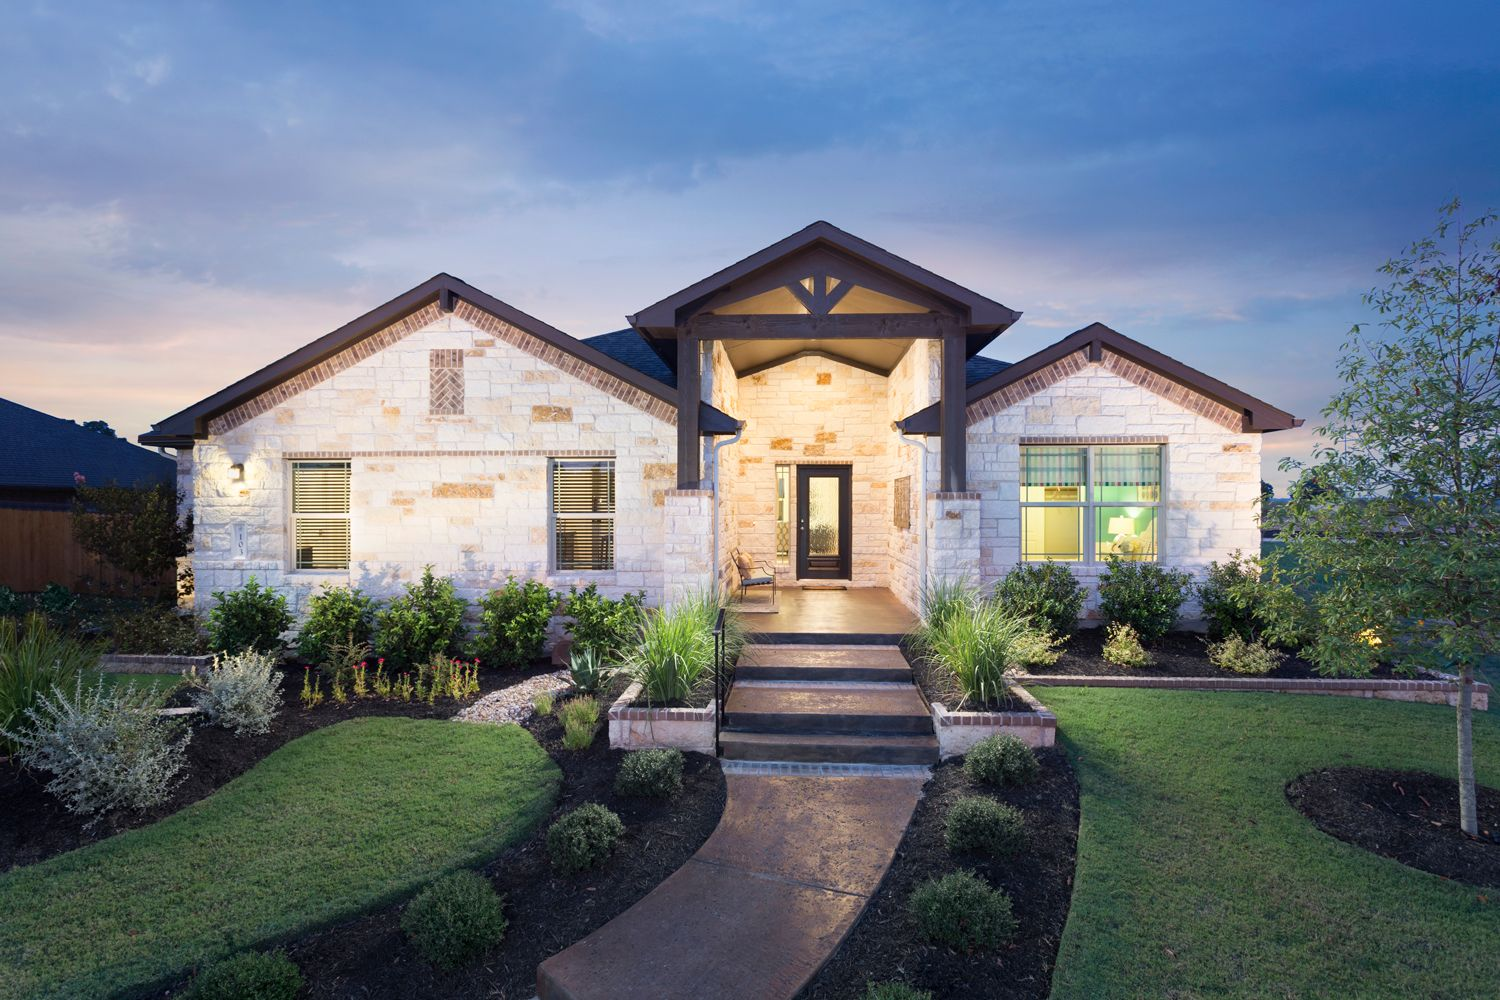 bastrop county buddhist singles Search all bastrop county, tx hud listings for sale view government hud homes in bastrop county and find a property below market value hudhomescom has the most current list of hud.